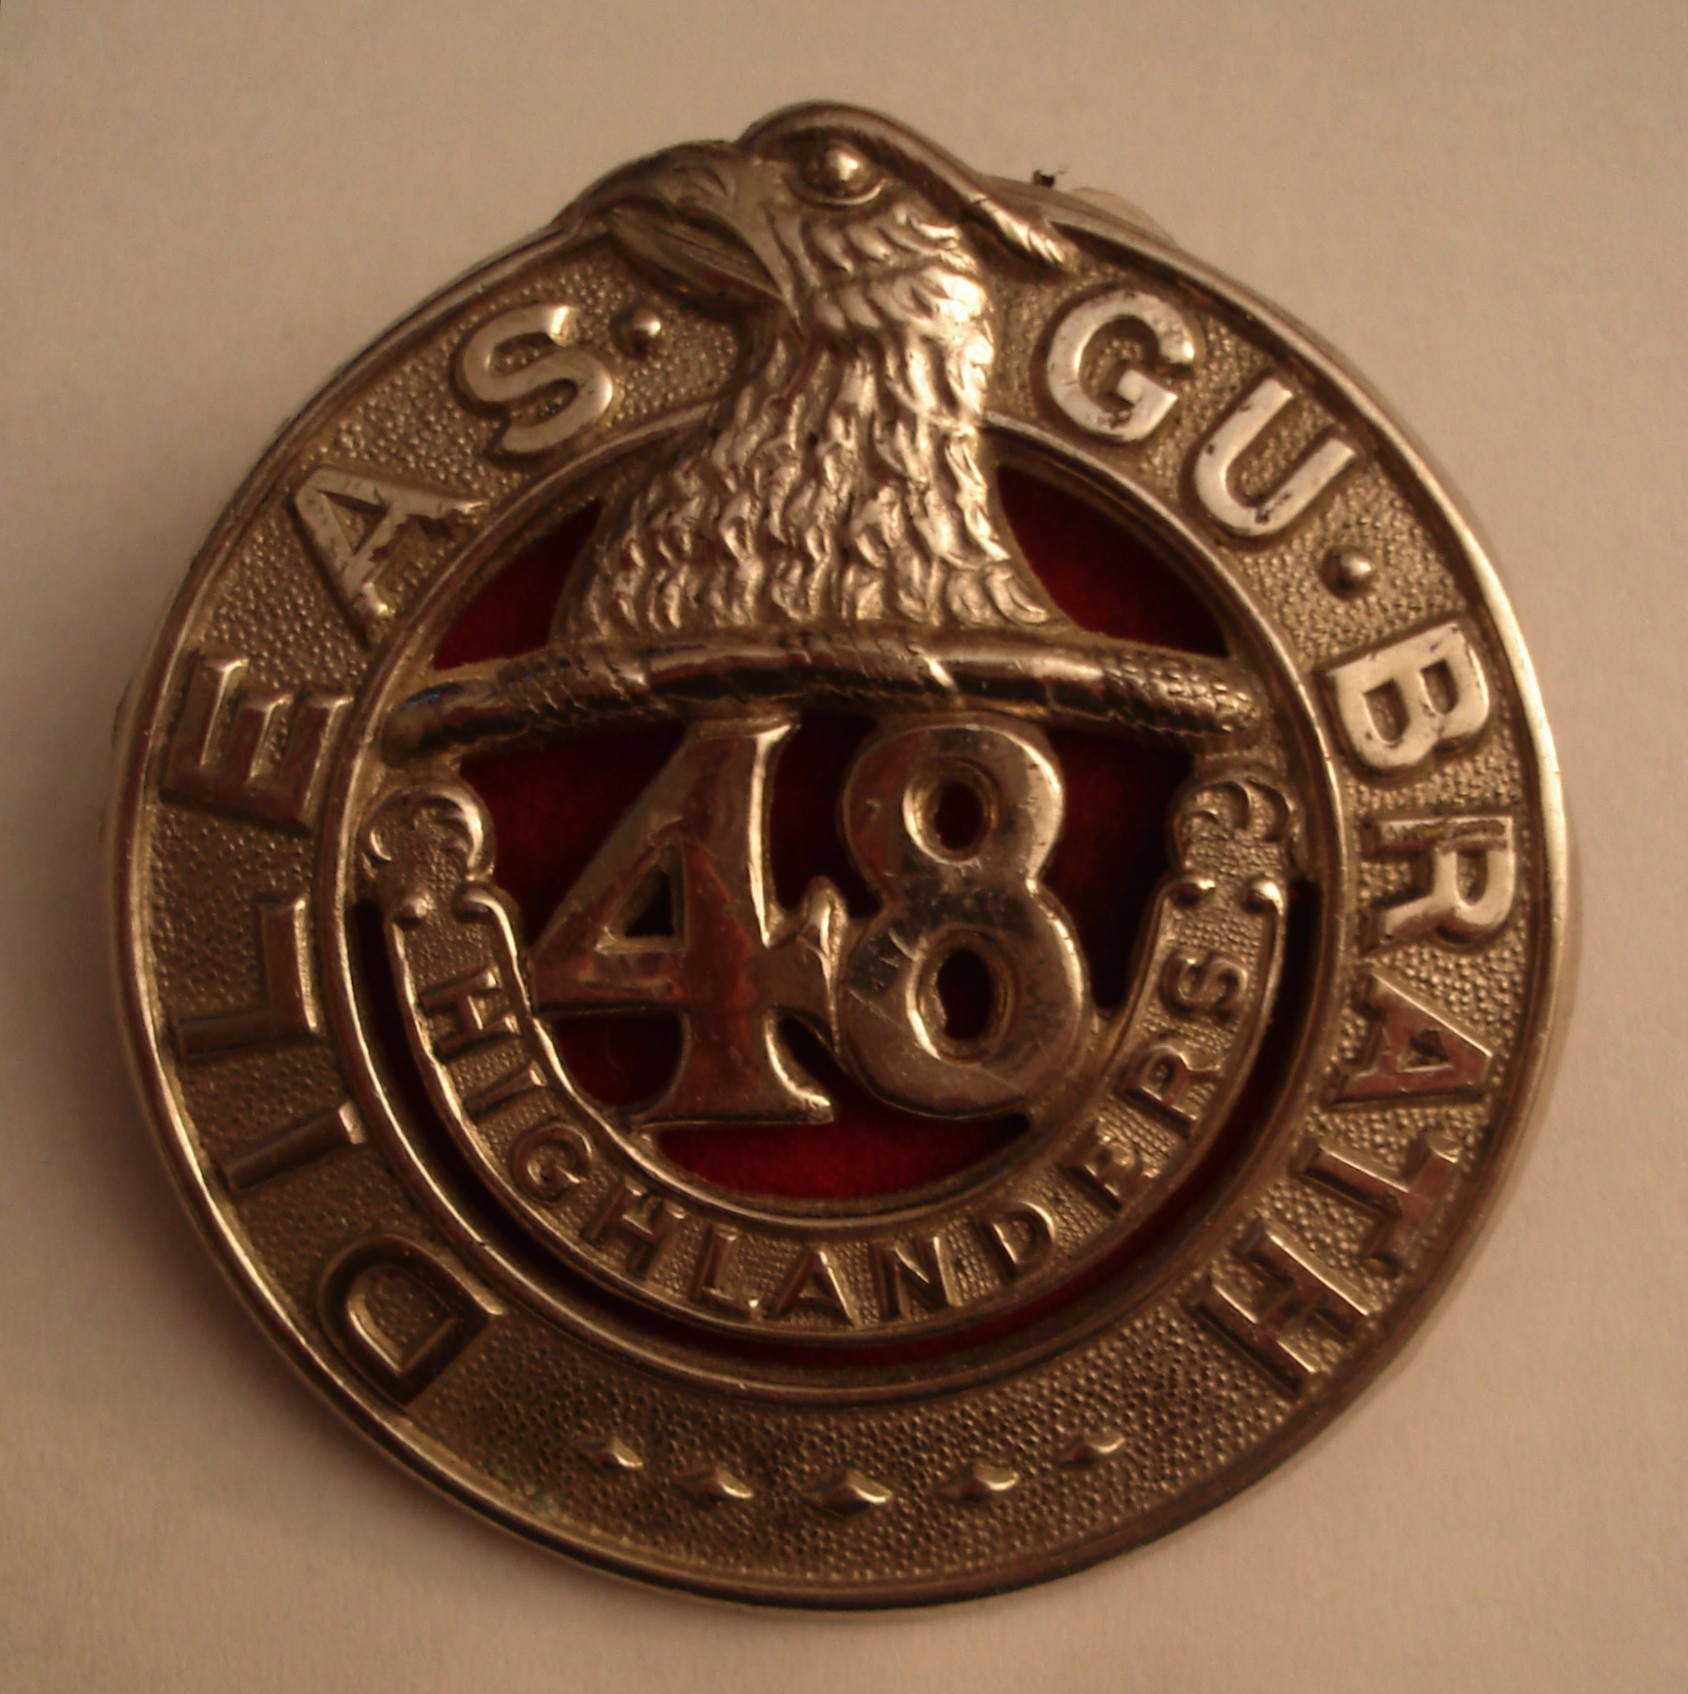 Badge– In memory of the members of the 48th Highlanders of Canada who went to war and did not come home. Submitted on behalf of the 48th Highlanders Museum, 73 Simcoe St. Toronto, ON